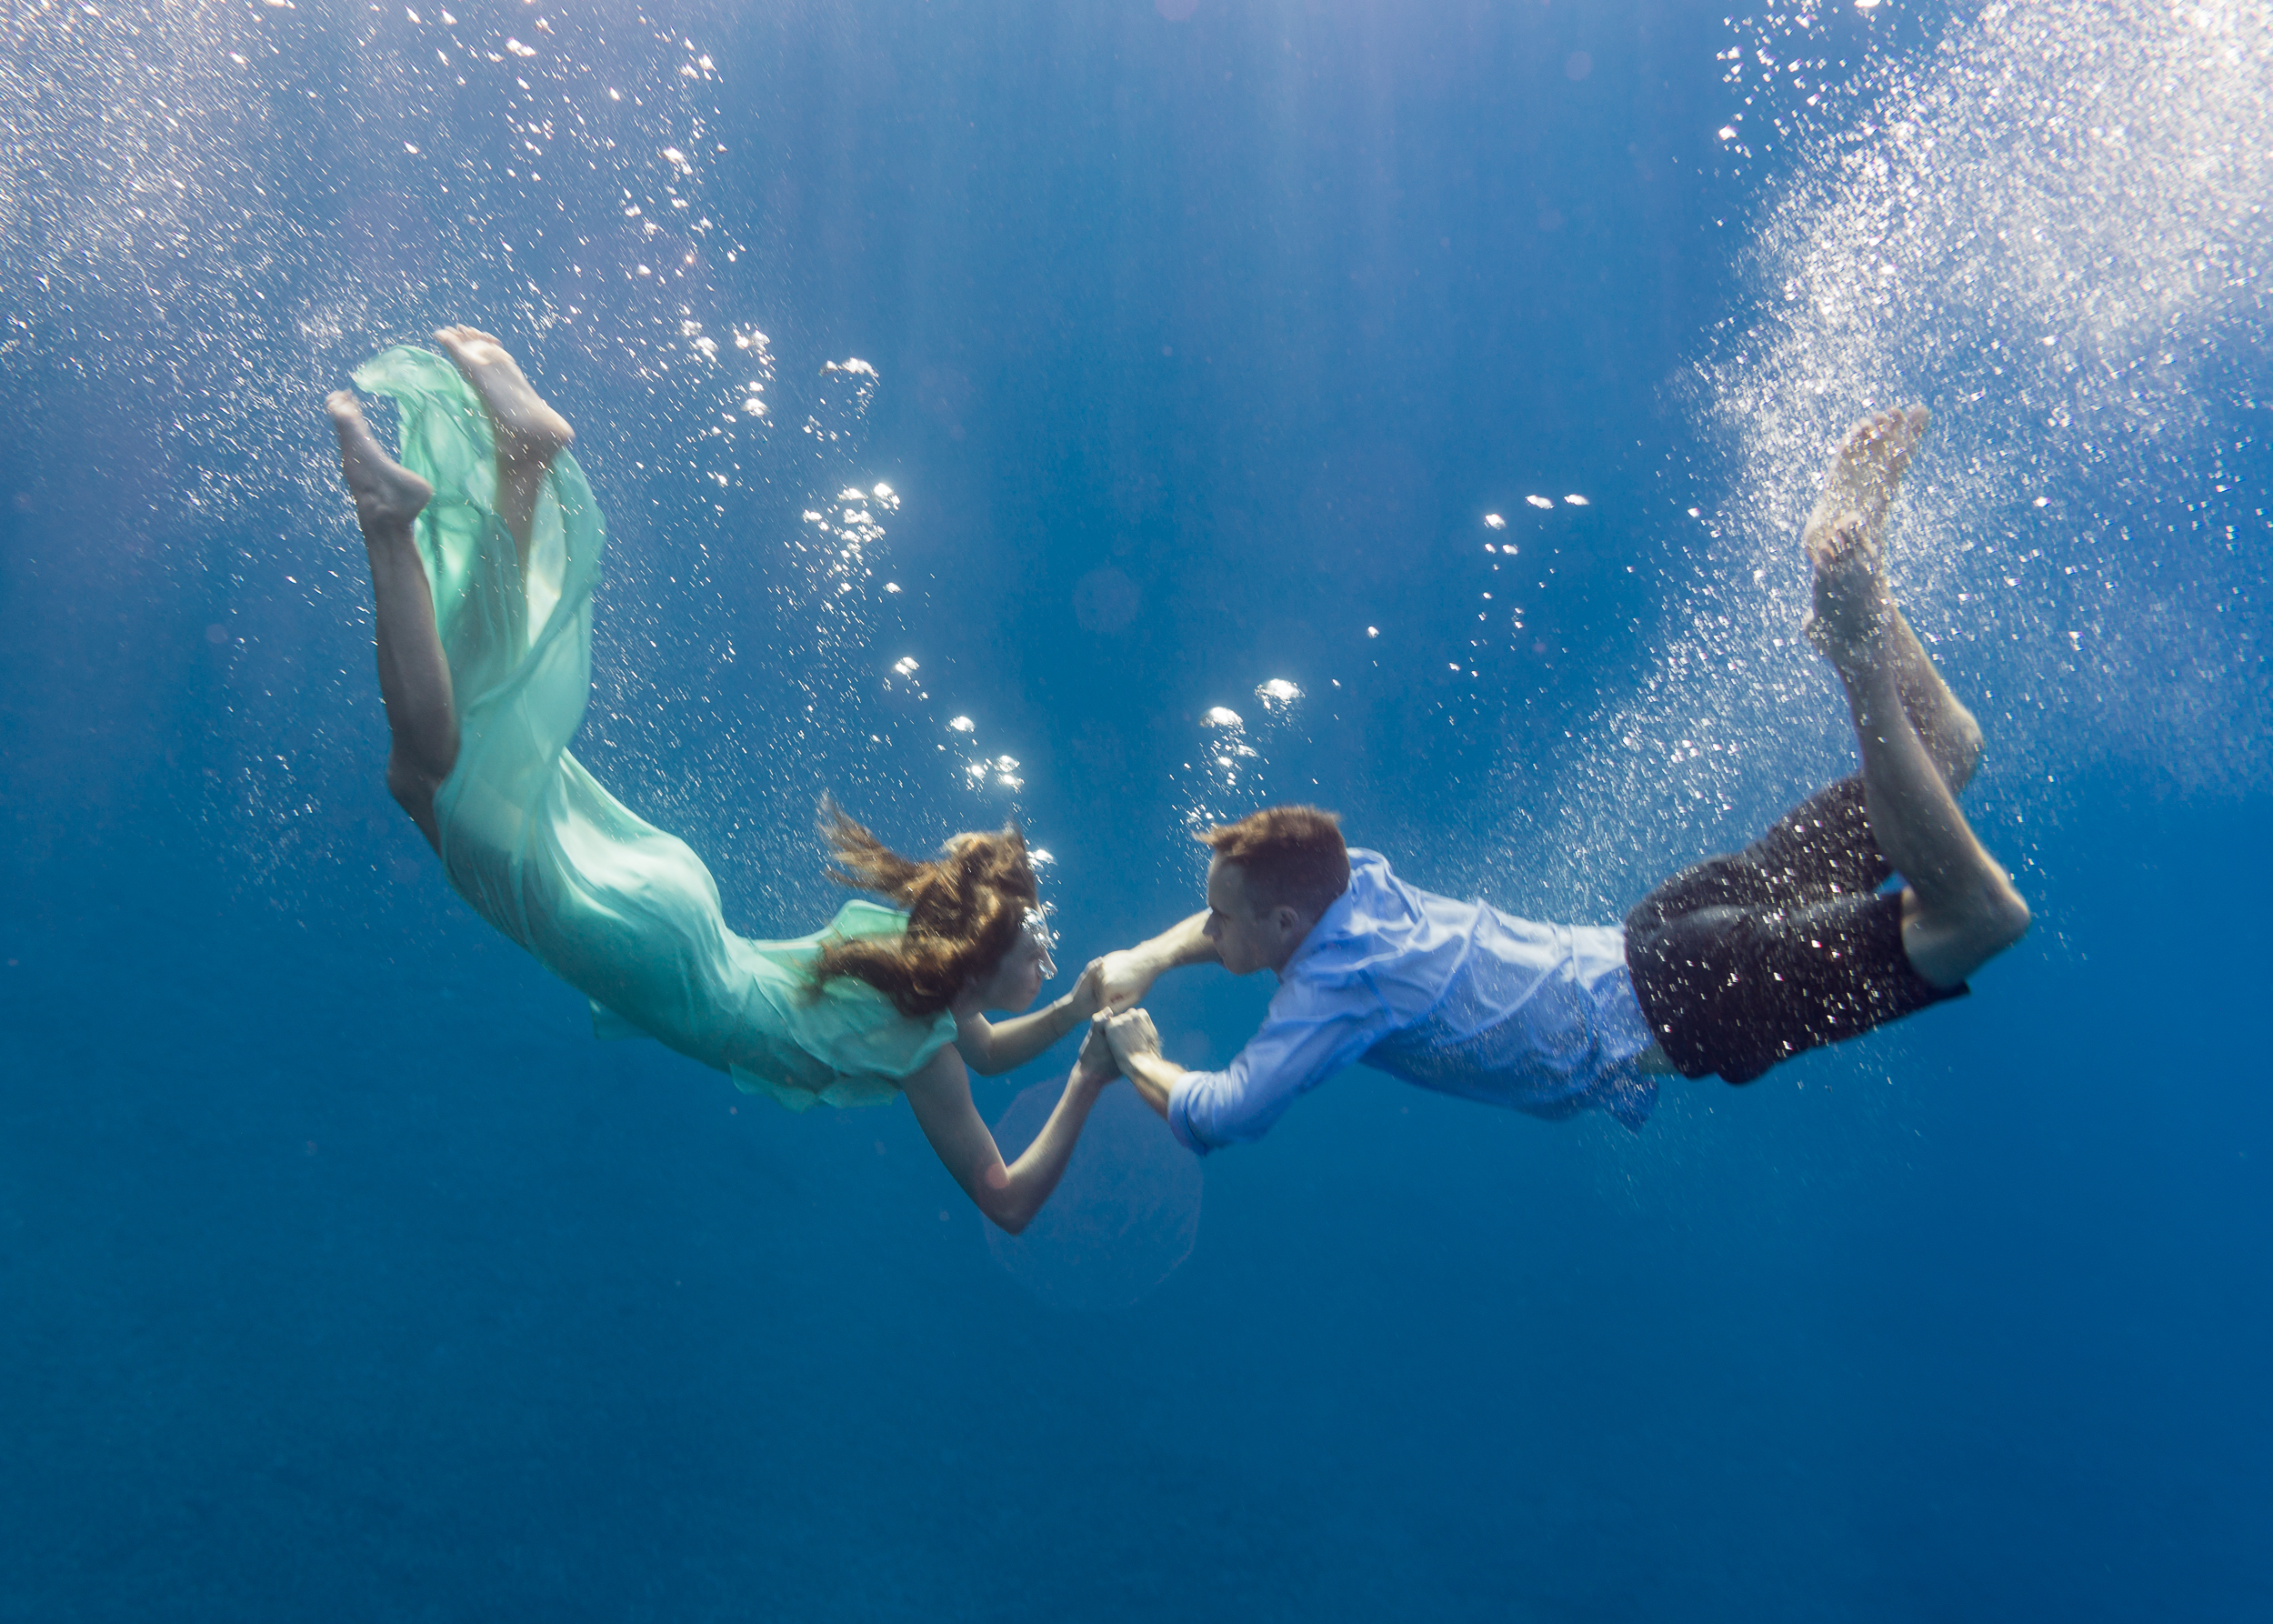 guam-underwater-engagement-photography-sunrise-roxanne-augusta.jpg